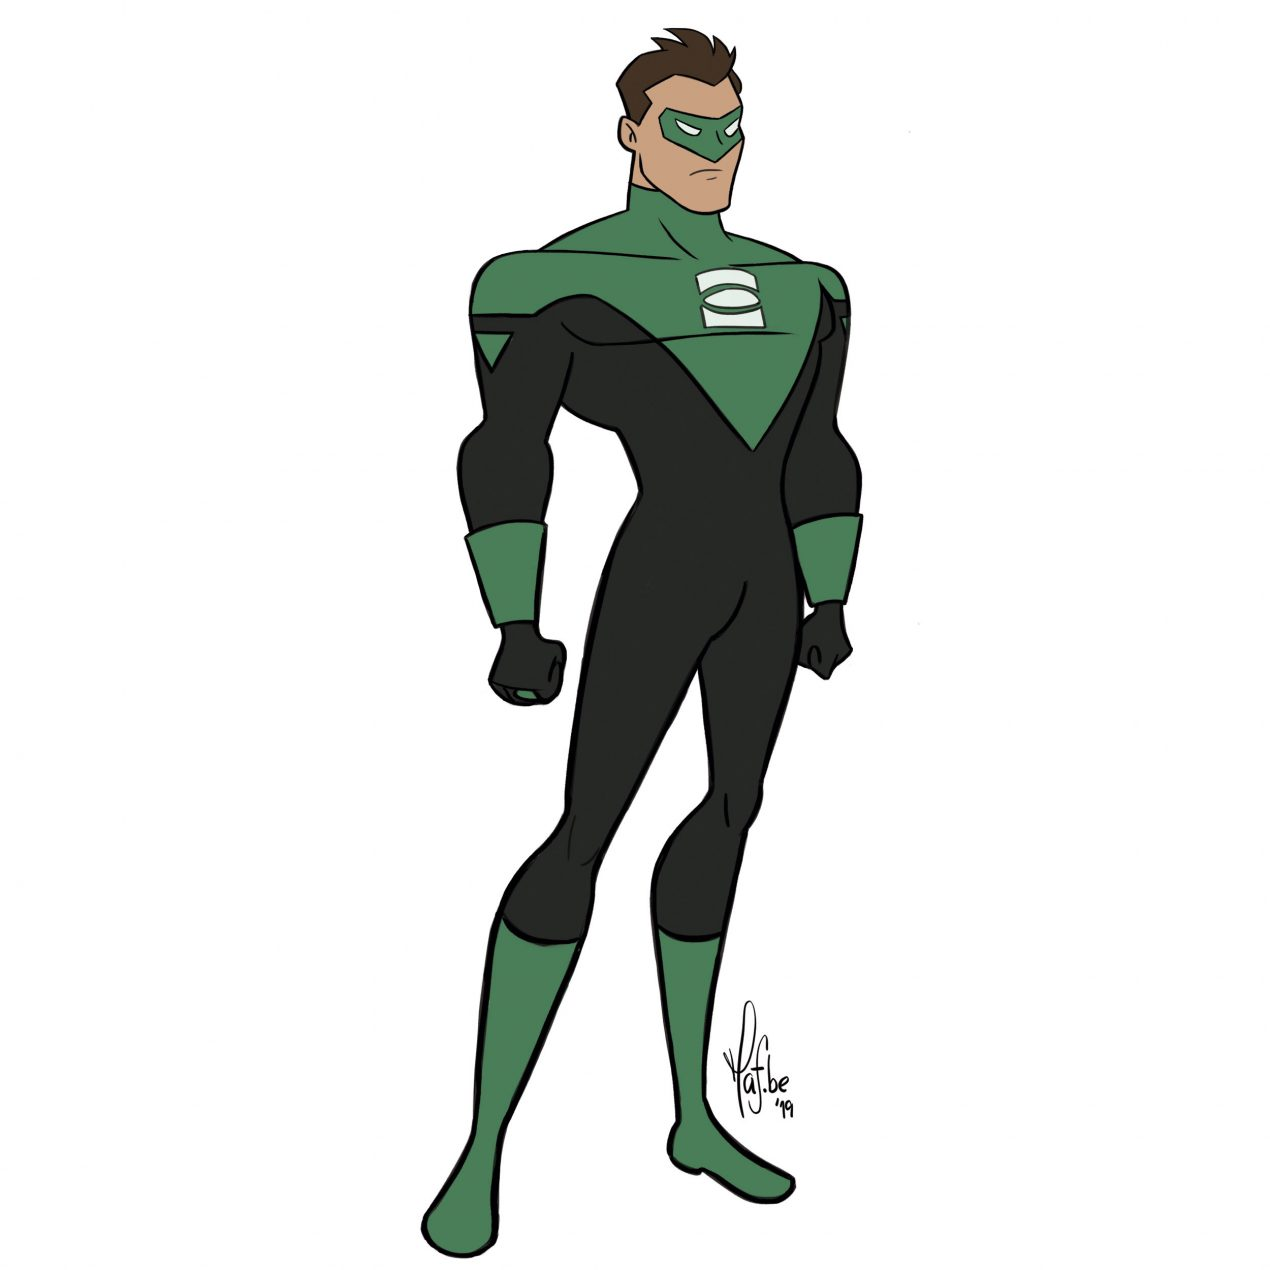 Learn To Draw Green Lantern in 7 Easy Steps (with Pictures)